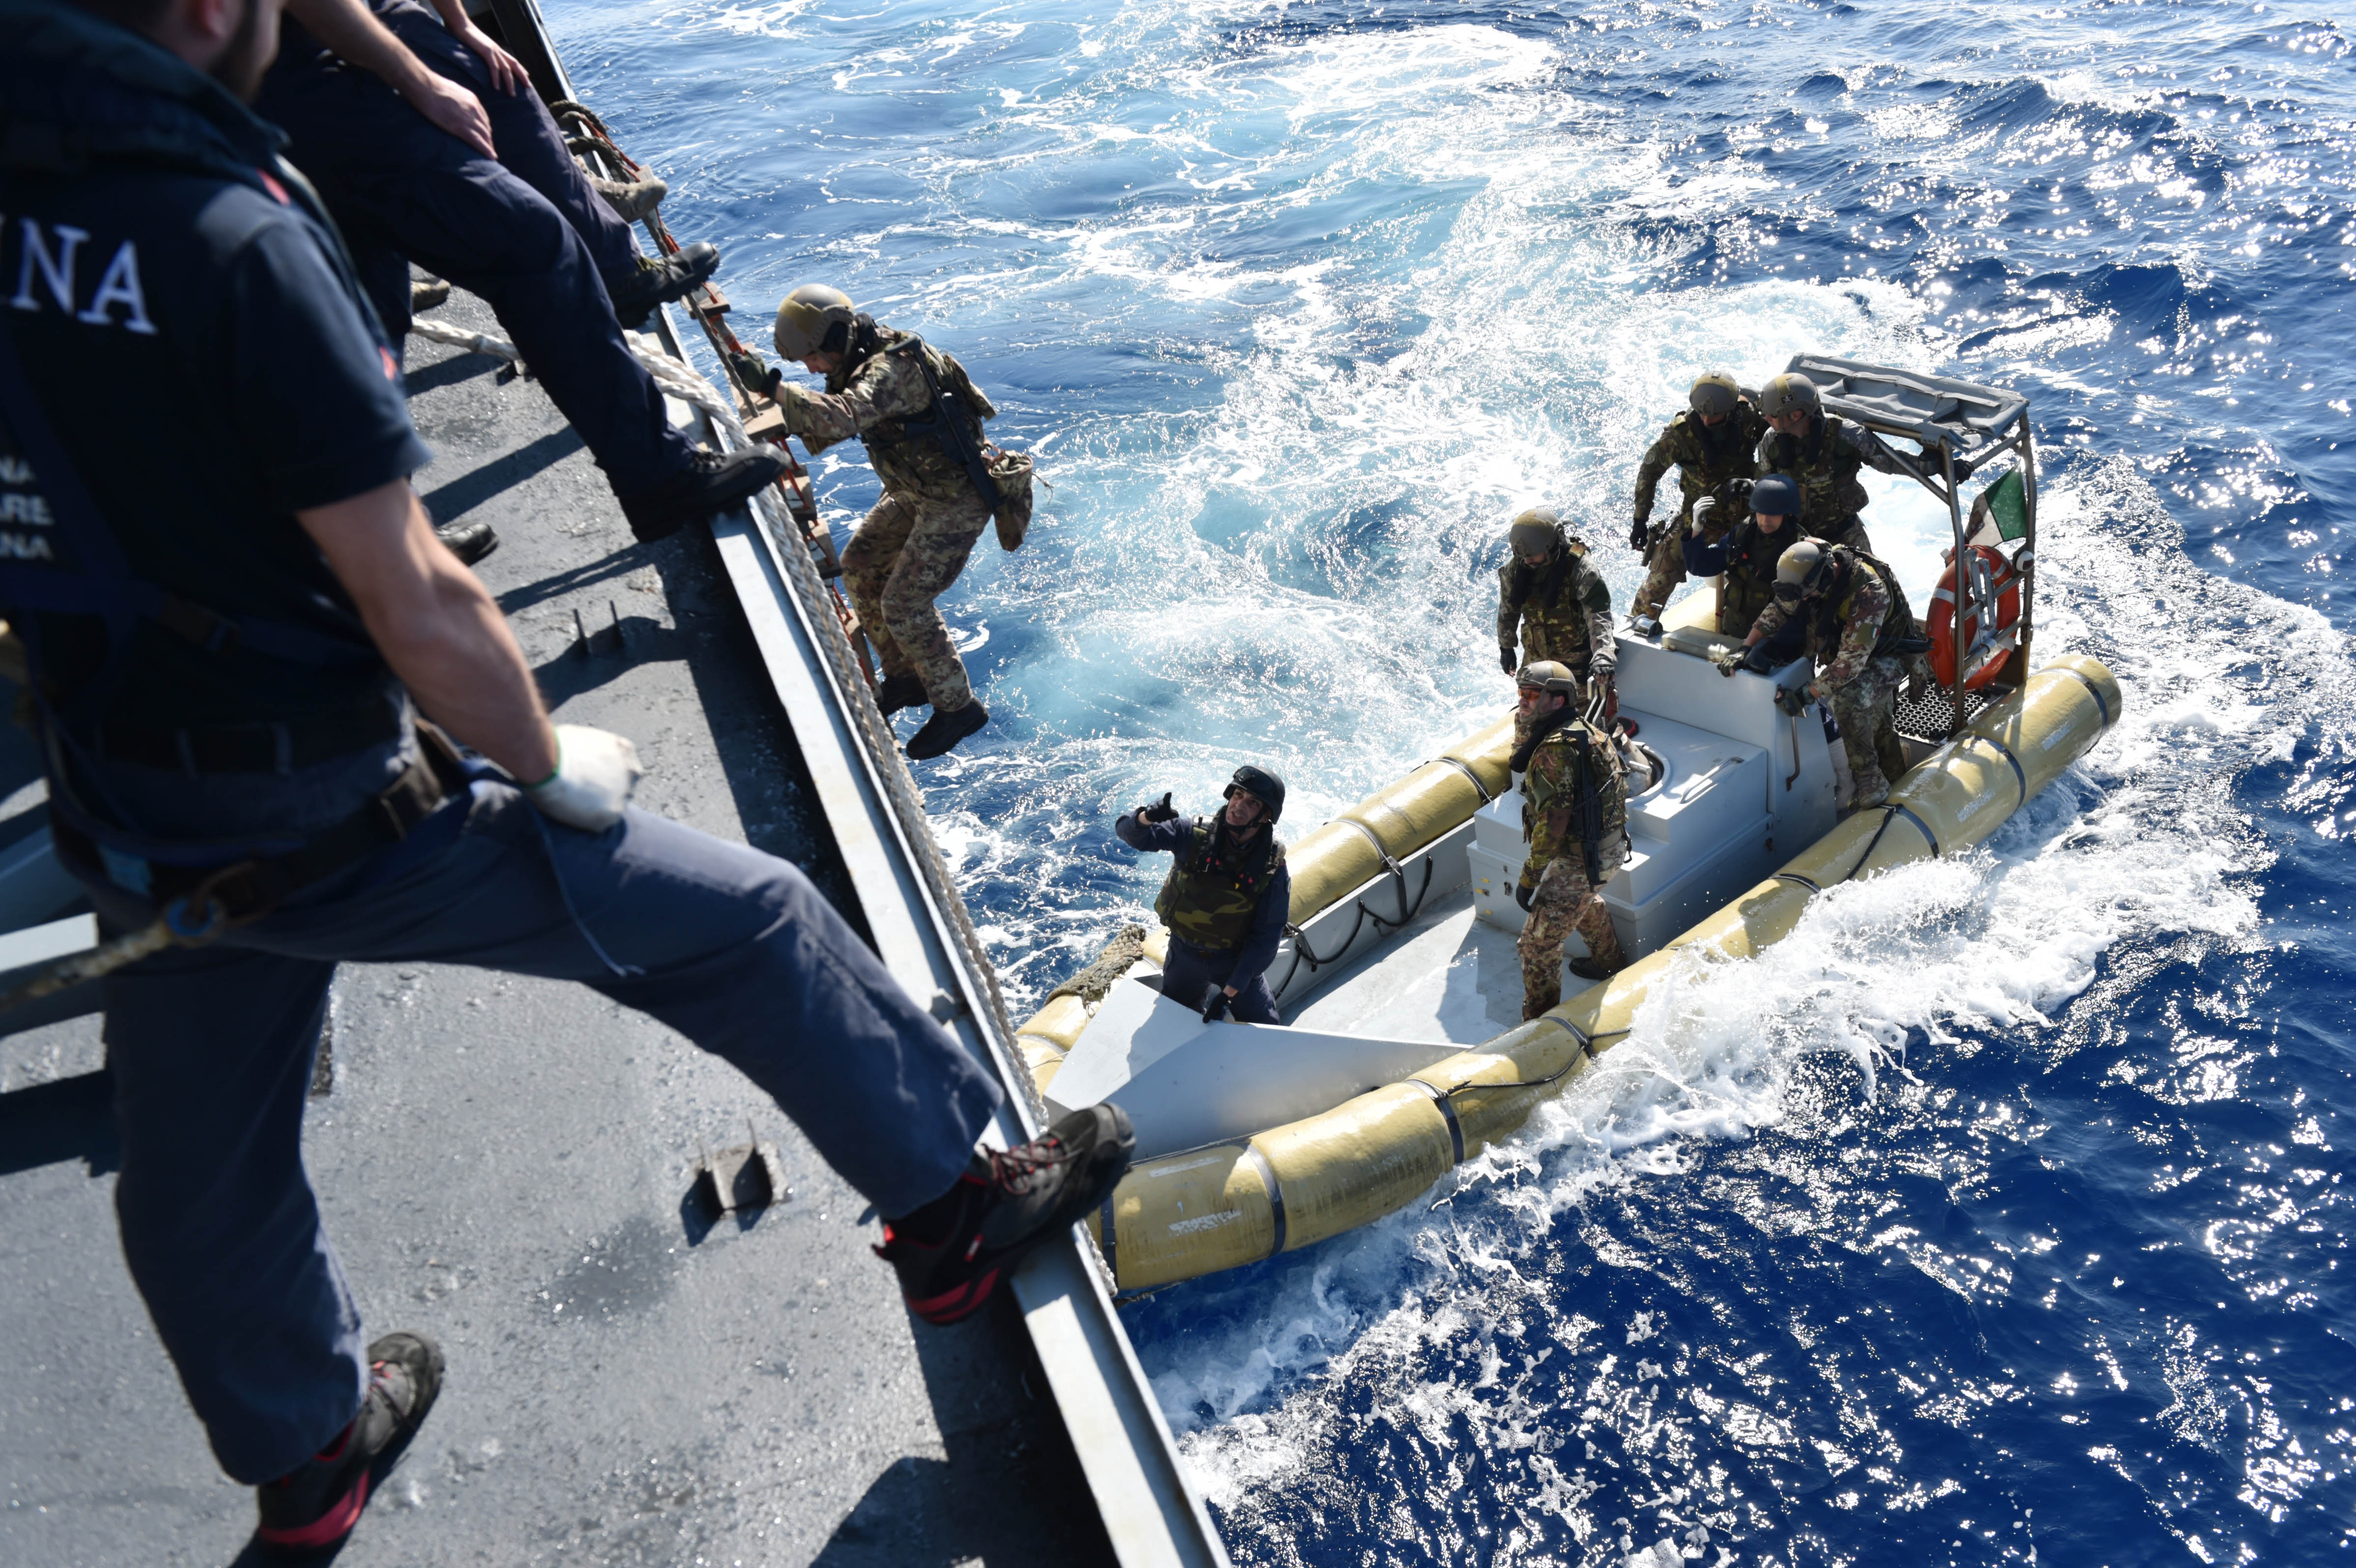 160525-N-XT273-136 MEDITERRANEAN SEA (May 25, 2016) Italian sailors and marines participate in a mock visit, board, search, and seizure boarding drill aboard the Royal Moroccan ship P611 during exercise Phoenix Express 2016, May 24. Phoenix Express is a U.S. Africa Command-sponsored multinational maritime exercise designed to increase maritime safety and security in the Mediterranean. (U.S. Navy photo by Mass Communication Specialist 2nd Class Justin Stumberg/Released)